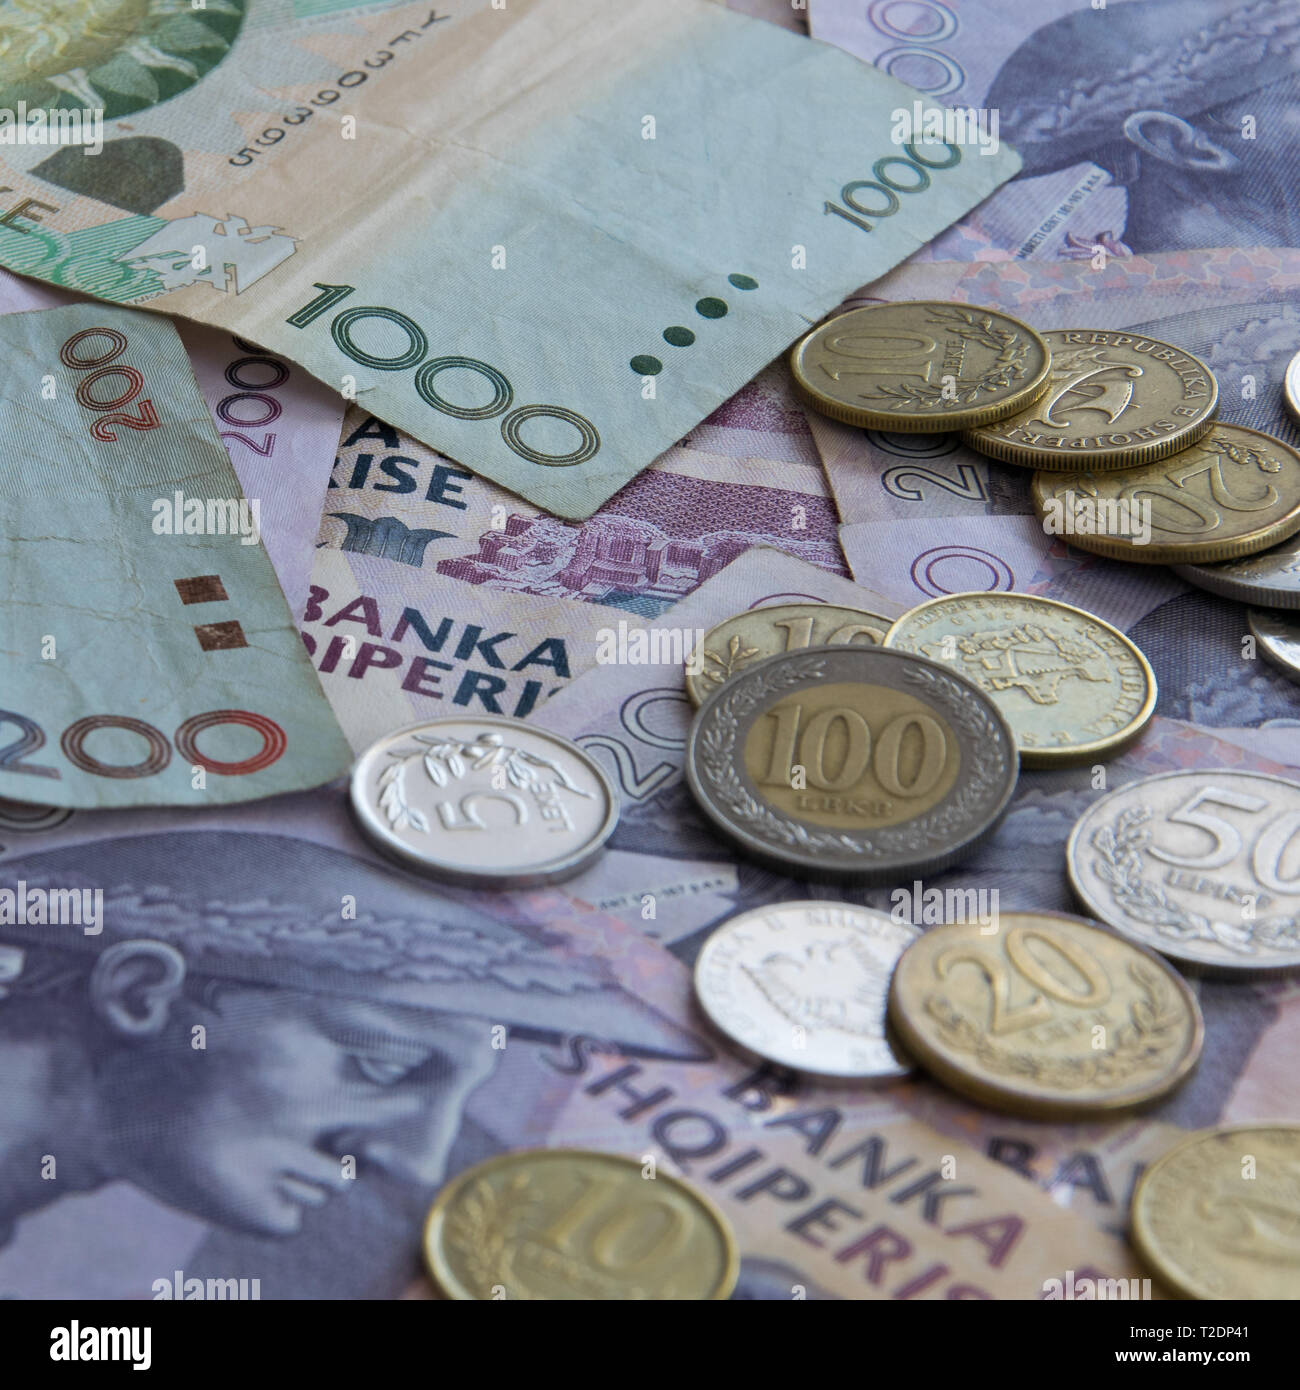 Albanian Currency Stock Photos & Albanian Currency Stock